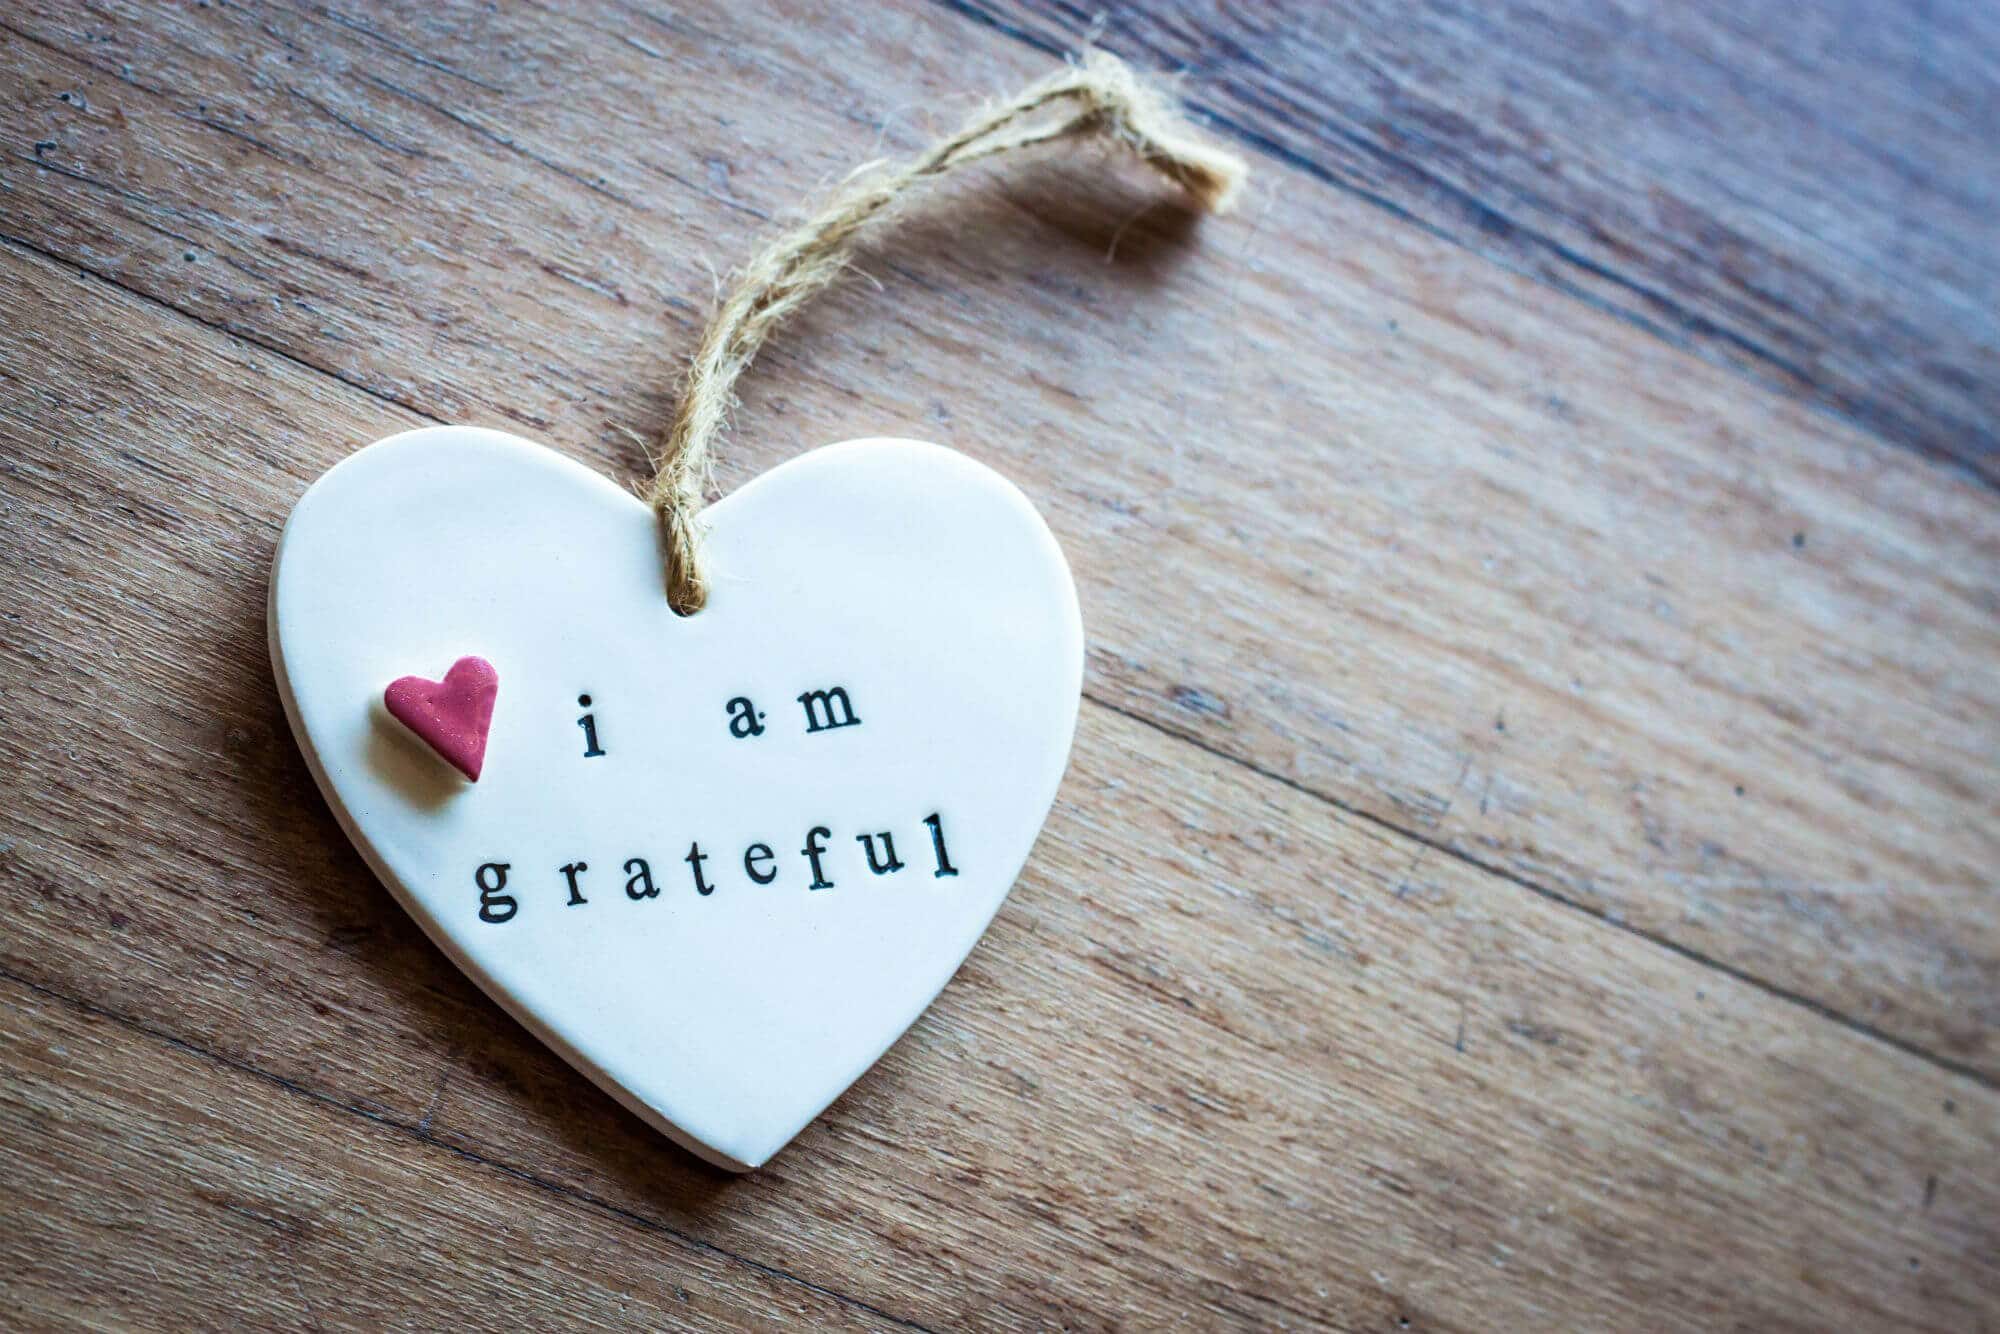 Negative Gratitude Might Be Bringing You Down